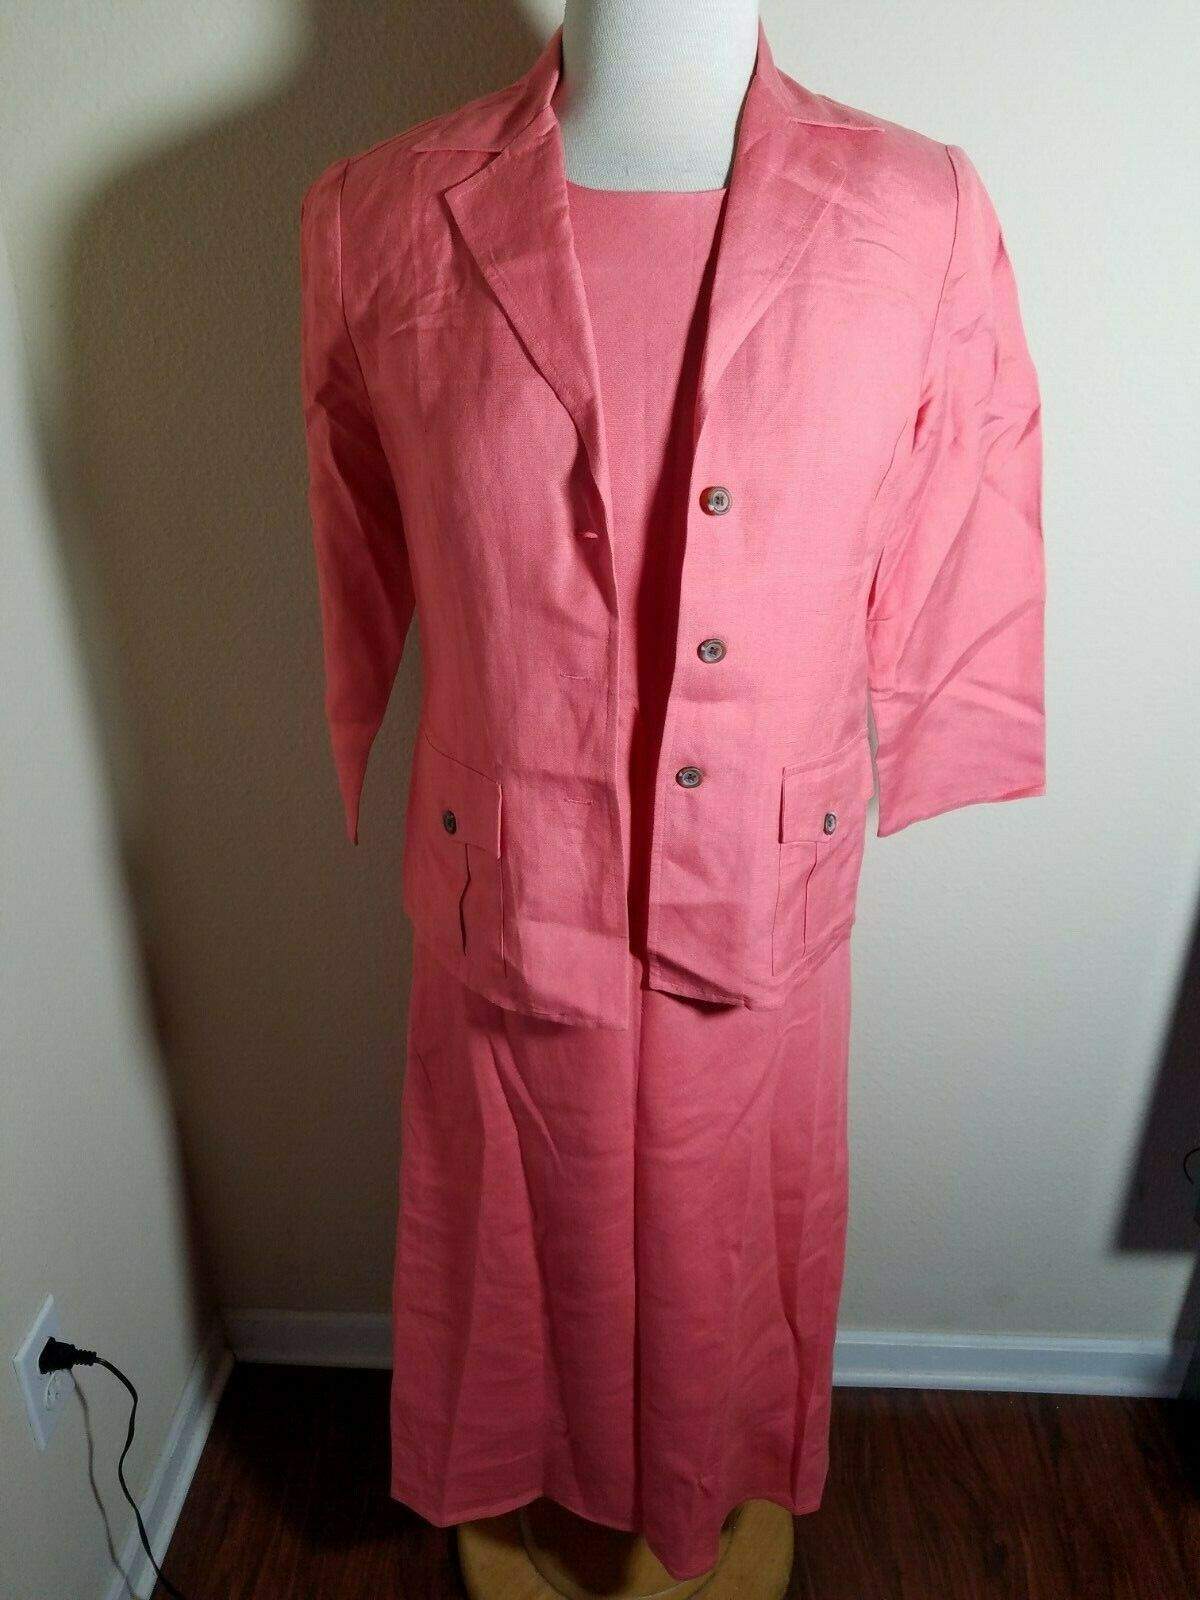 Talbots Petites Women's Dress Set Linen Blend Pink Sleeveless Maxi & Jacket 4 image 2